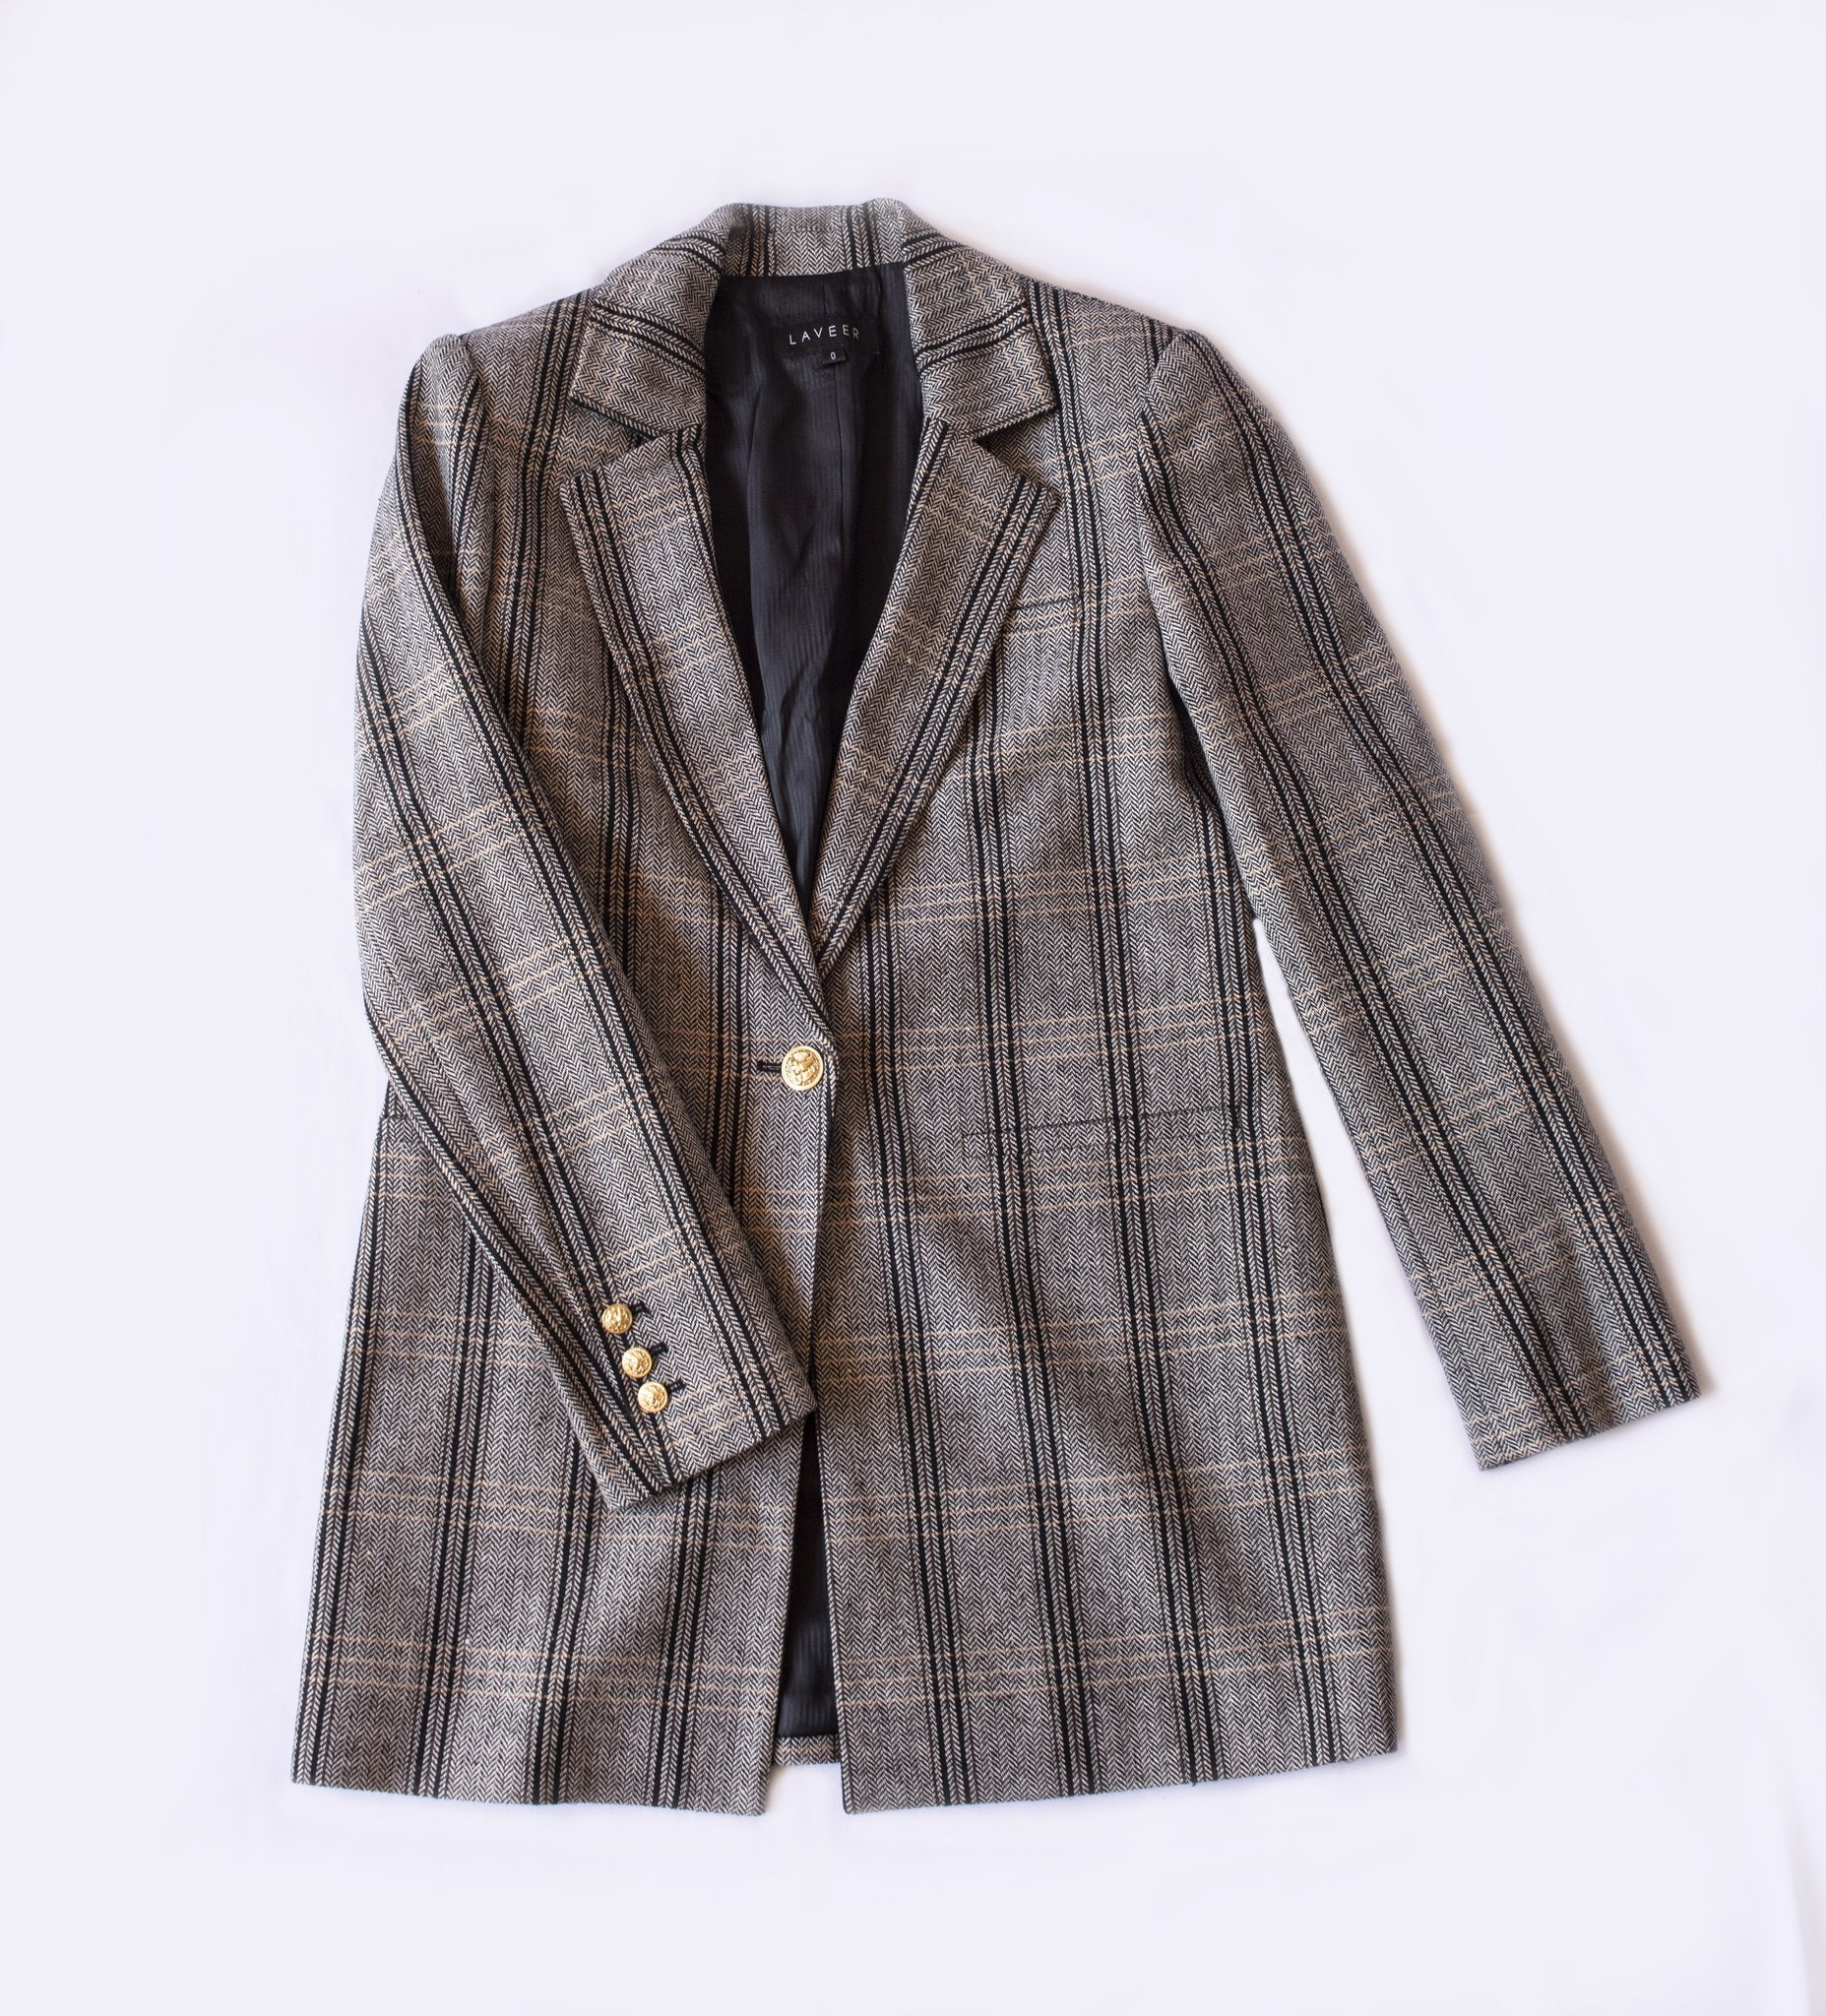 Oversized Boyfriend Blazer - Herringbone Plaid